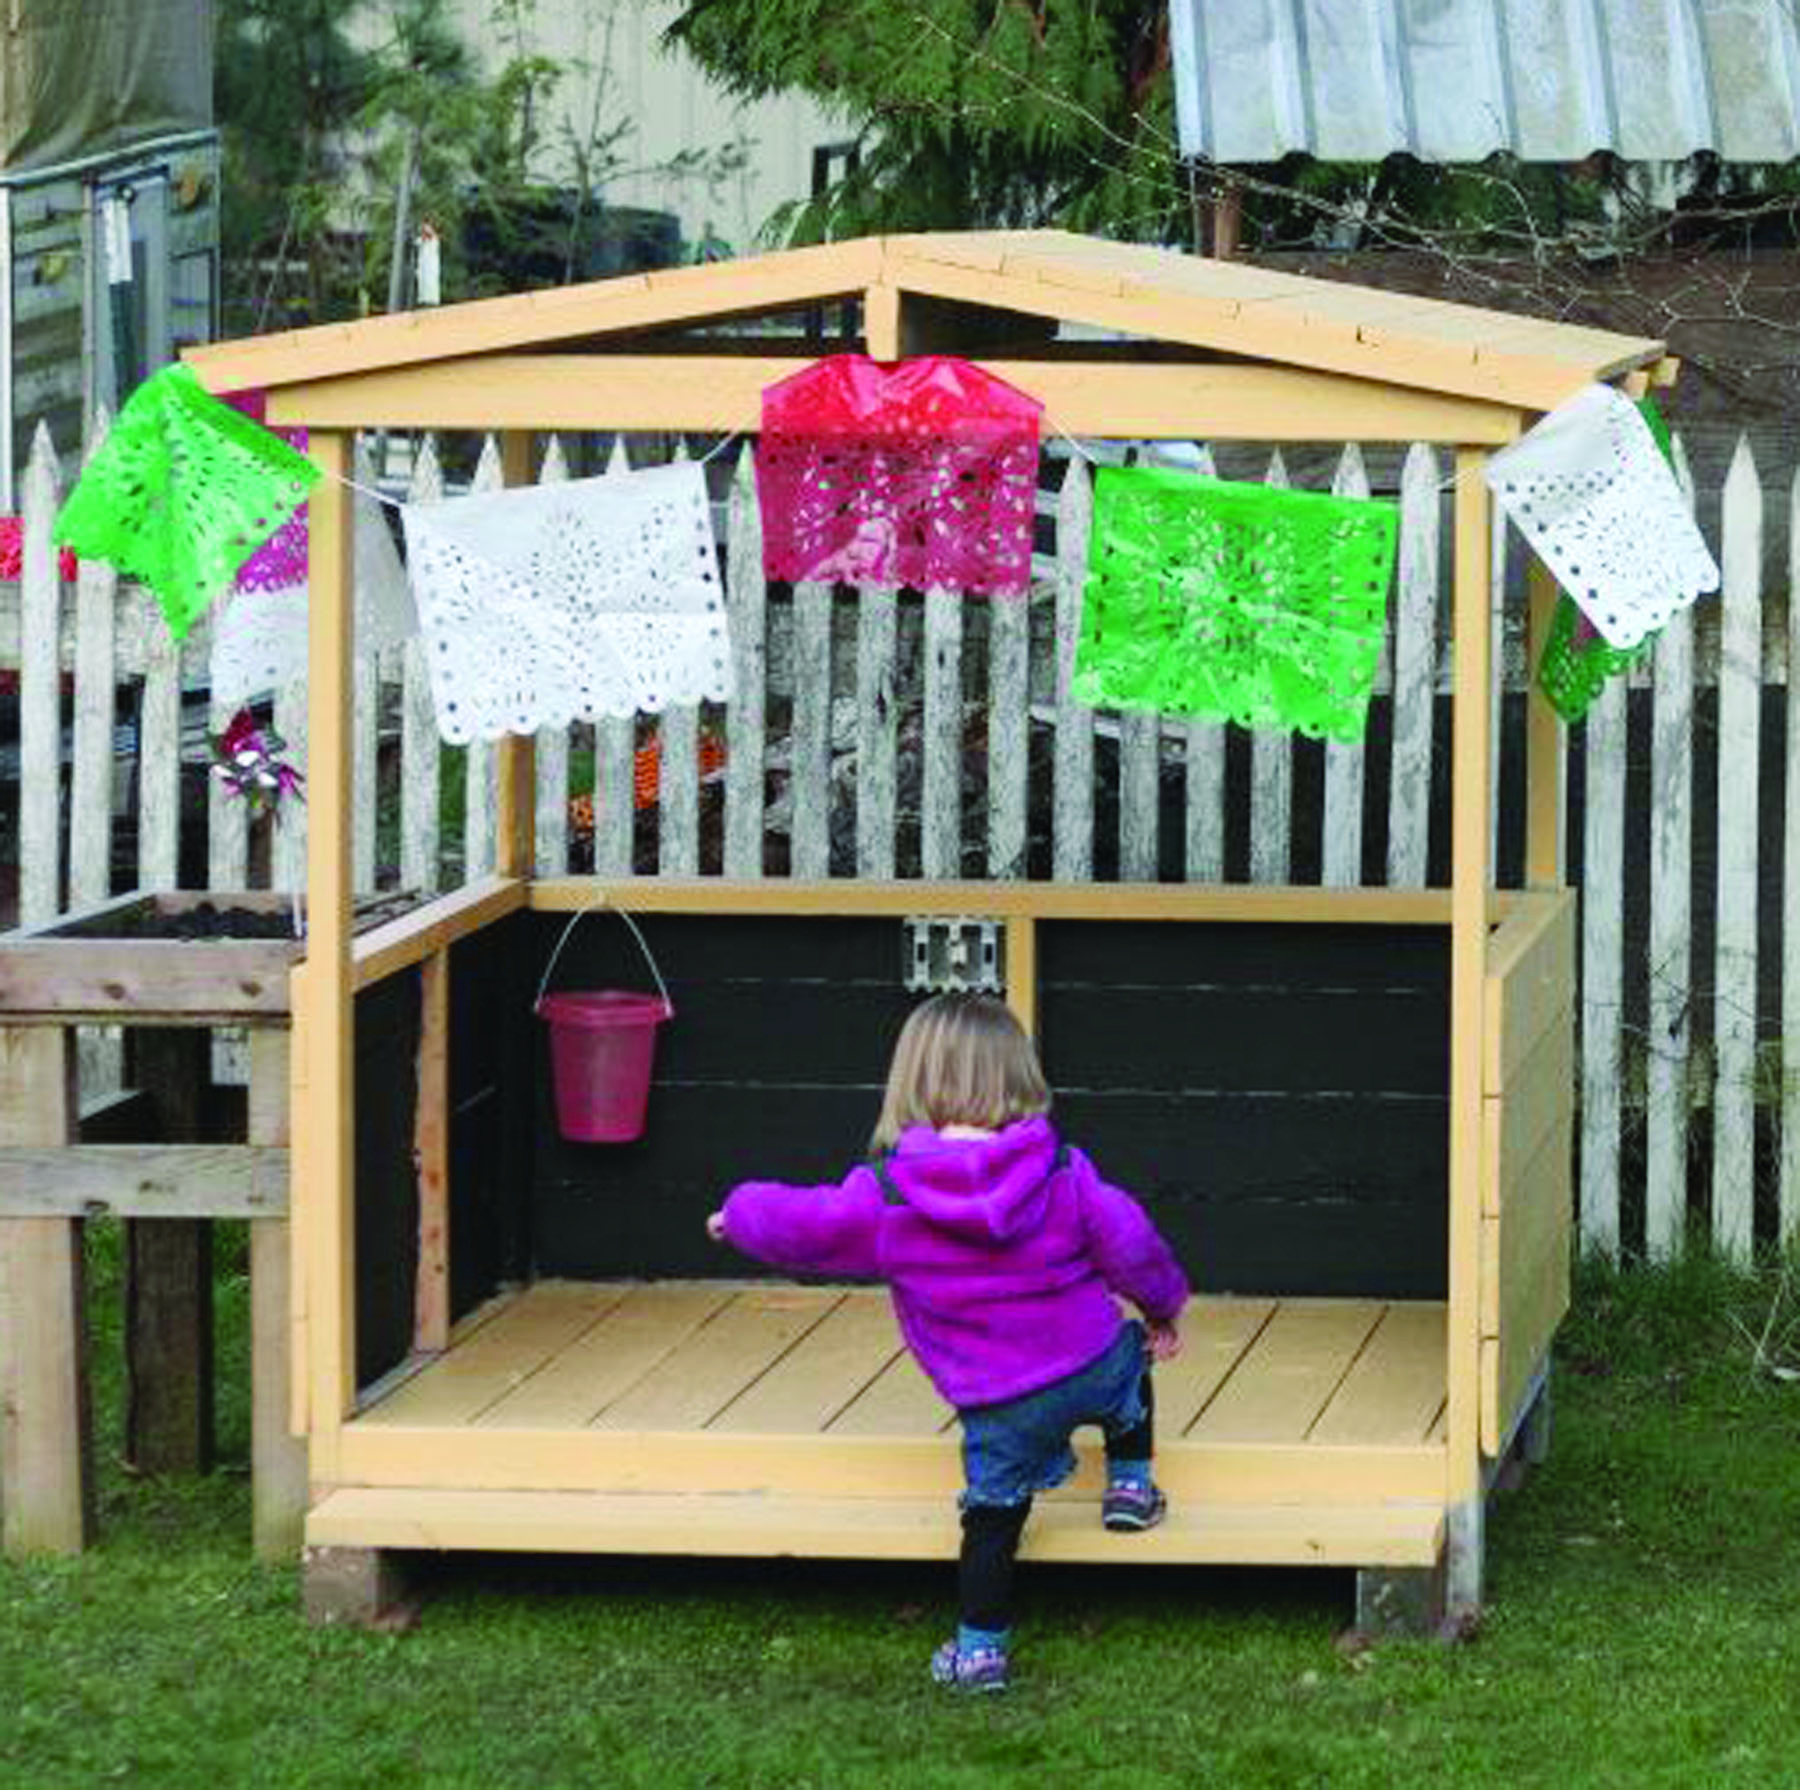 Pallet projects: Reuse every inch of space - Grow Northwest on wood pallet planter plans, wood pallet desk plans, wood pallet shelf plans, wood pallet garden plans, wood pallet bookshelf plans, wood pallet chicken co-op plans, wood pallet greenhouse plans, wood pallet garage, wood pallet carport plans, wood pallet swing plans, wood pallet treehouse plans, wood pallet table plans, wood pirate ship playhouse plans, wood pallet building, pallet house design plans, wood pallet gazebo plans, shed made from pallets plans, wood pallet wine rack plans, wood pallet bench plans, wood pallet fence plans,